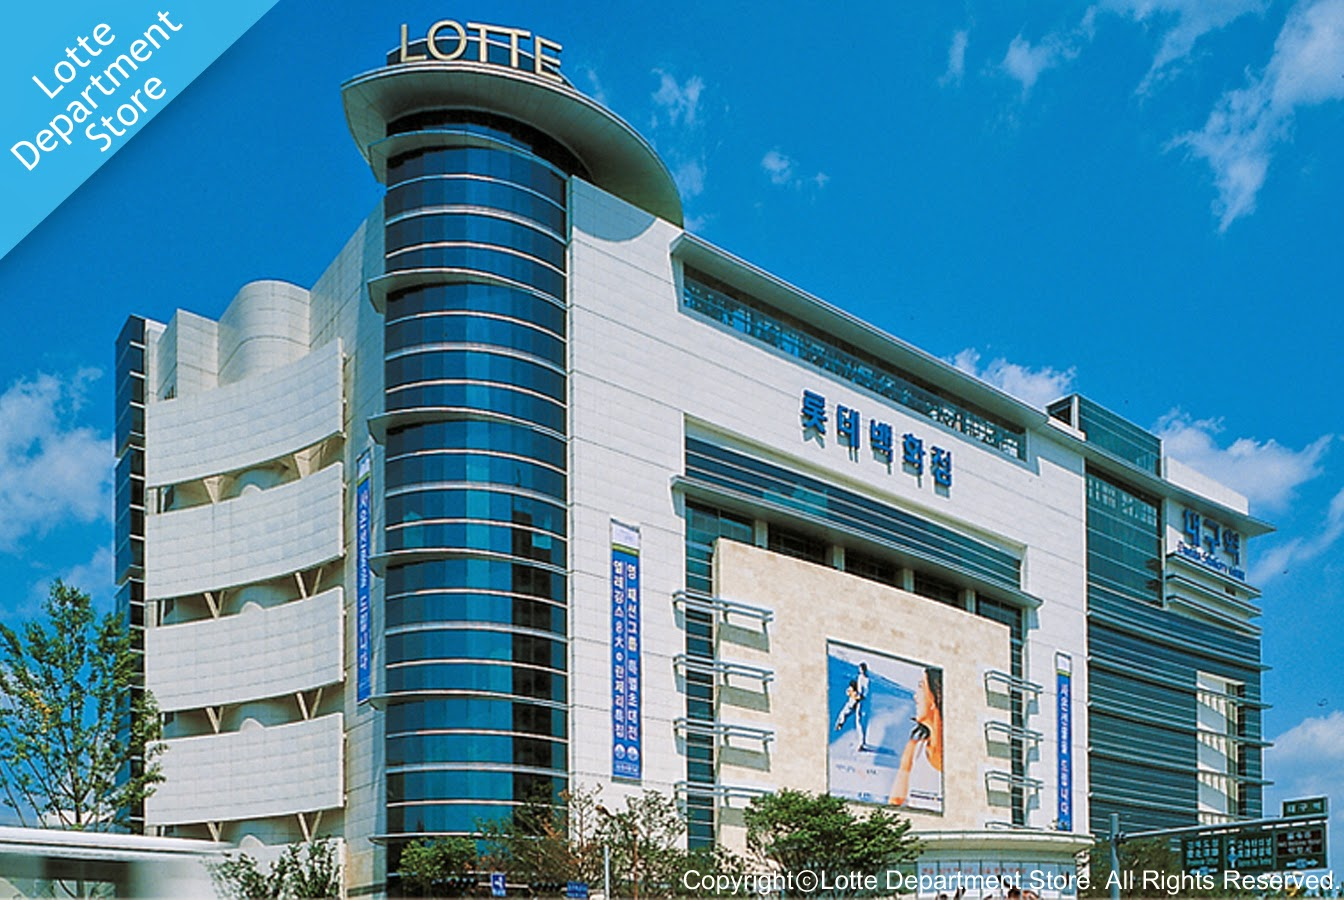 Shopping Areas in Daegu-Lotte Department Store in Daegu Station, Buk-gu